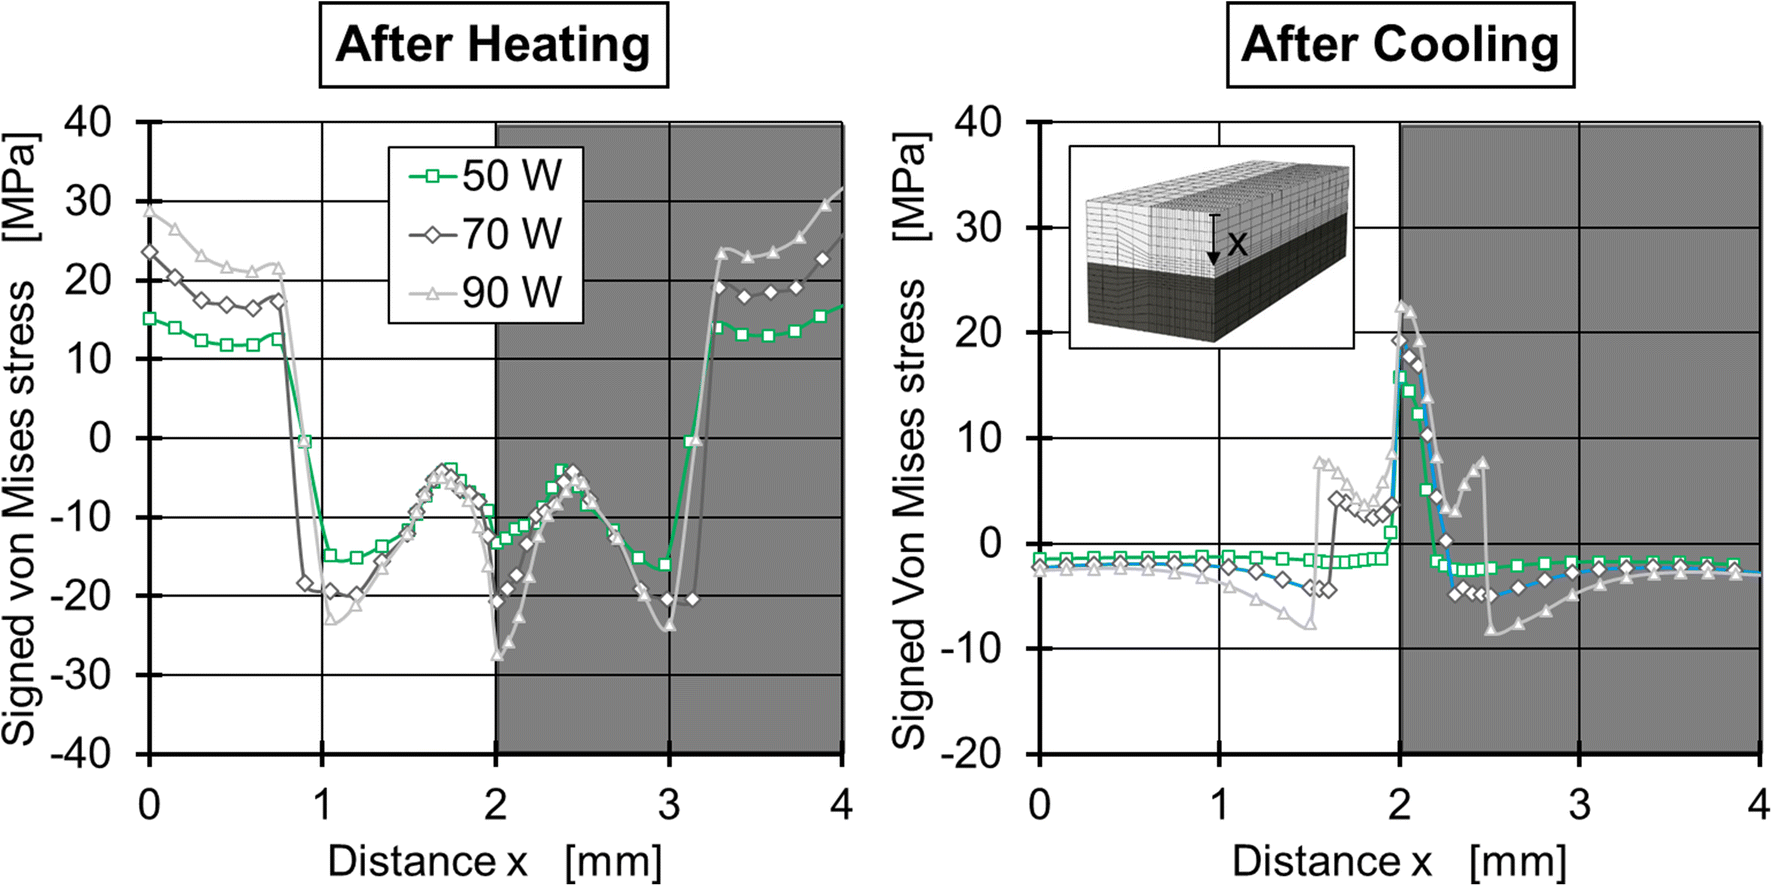 Modeling of the thermally induced residual stresses during